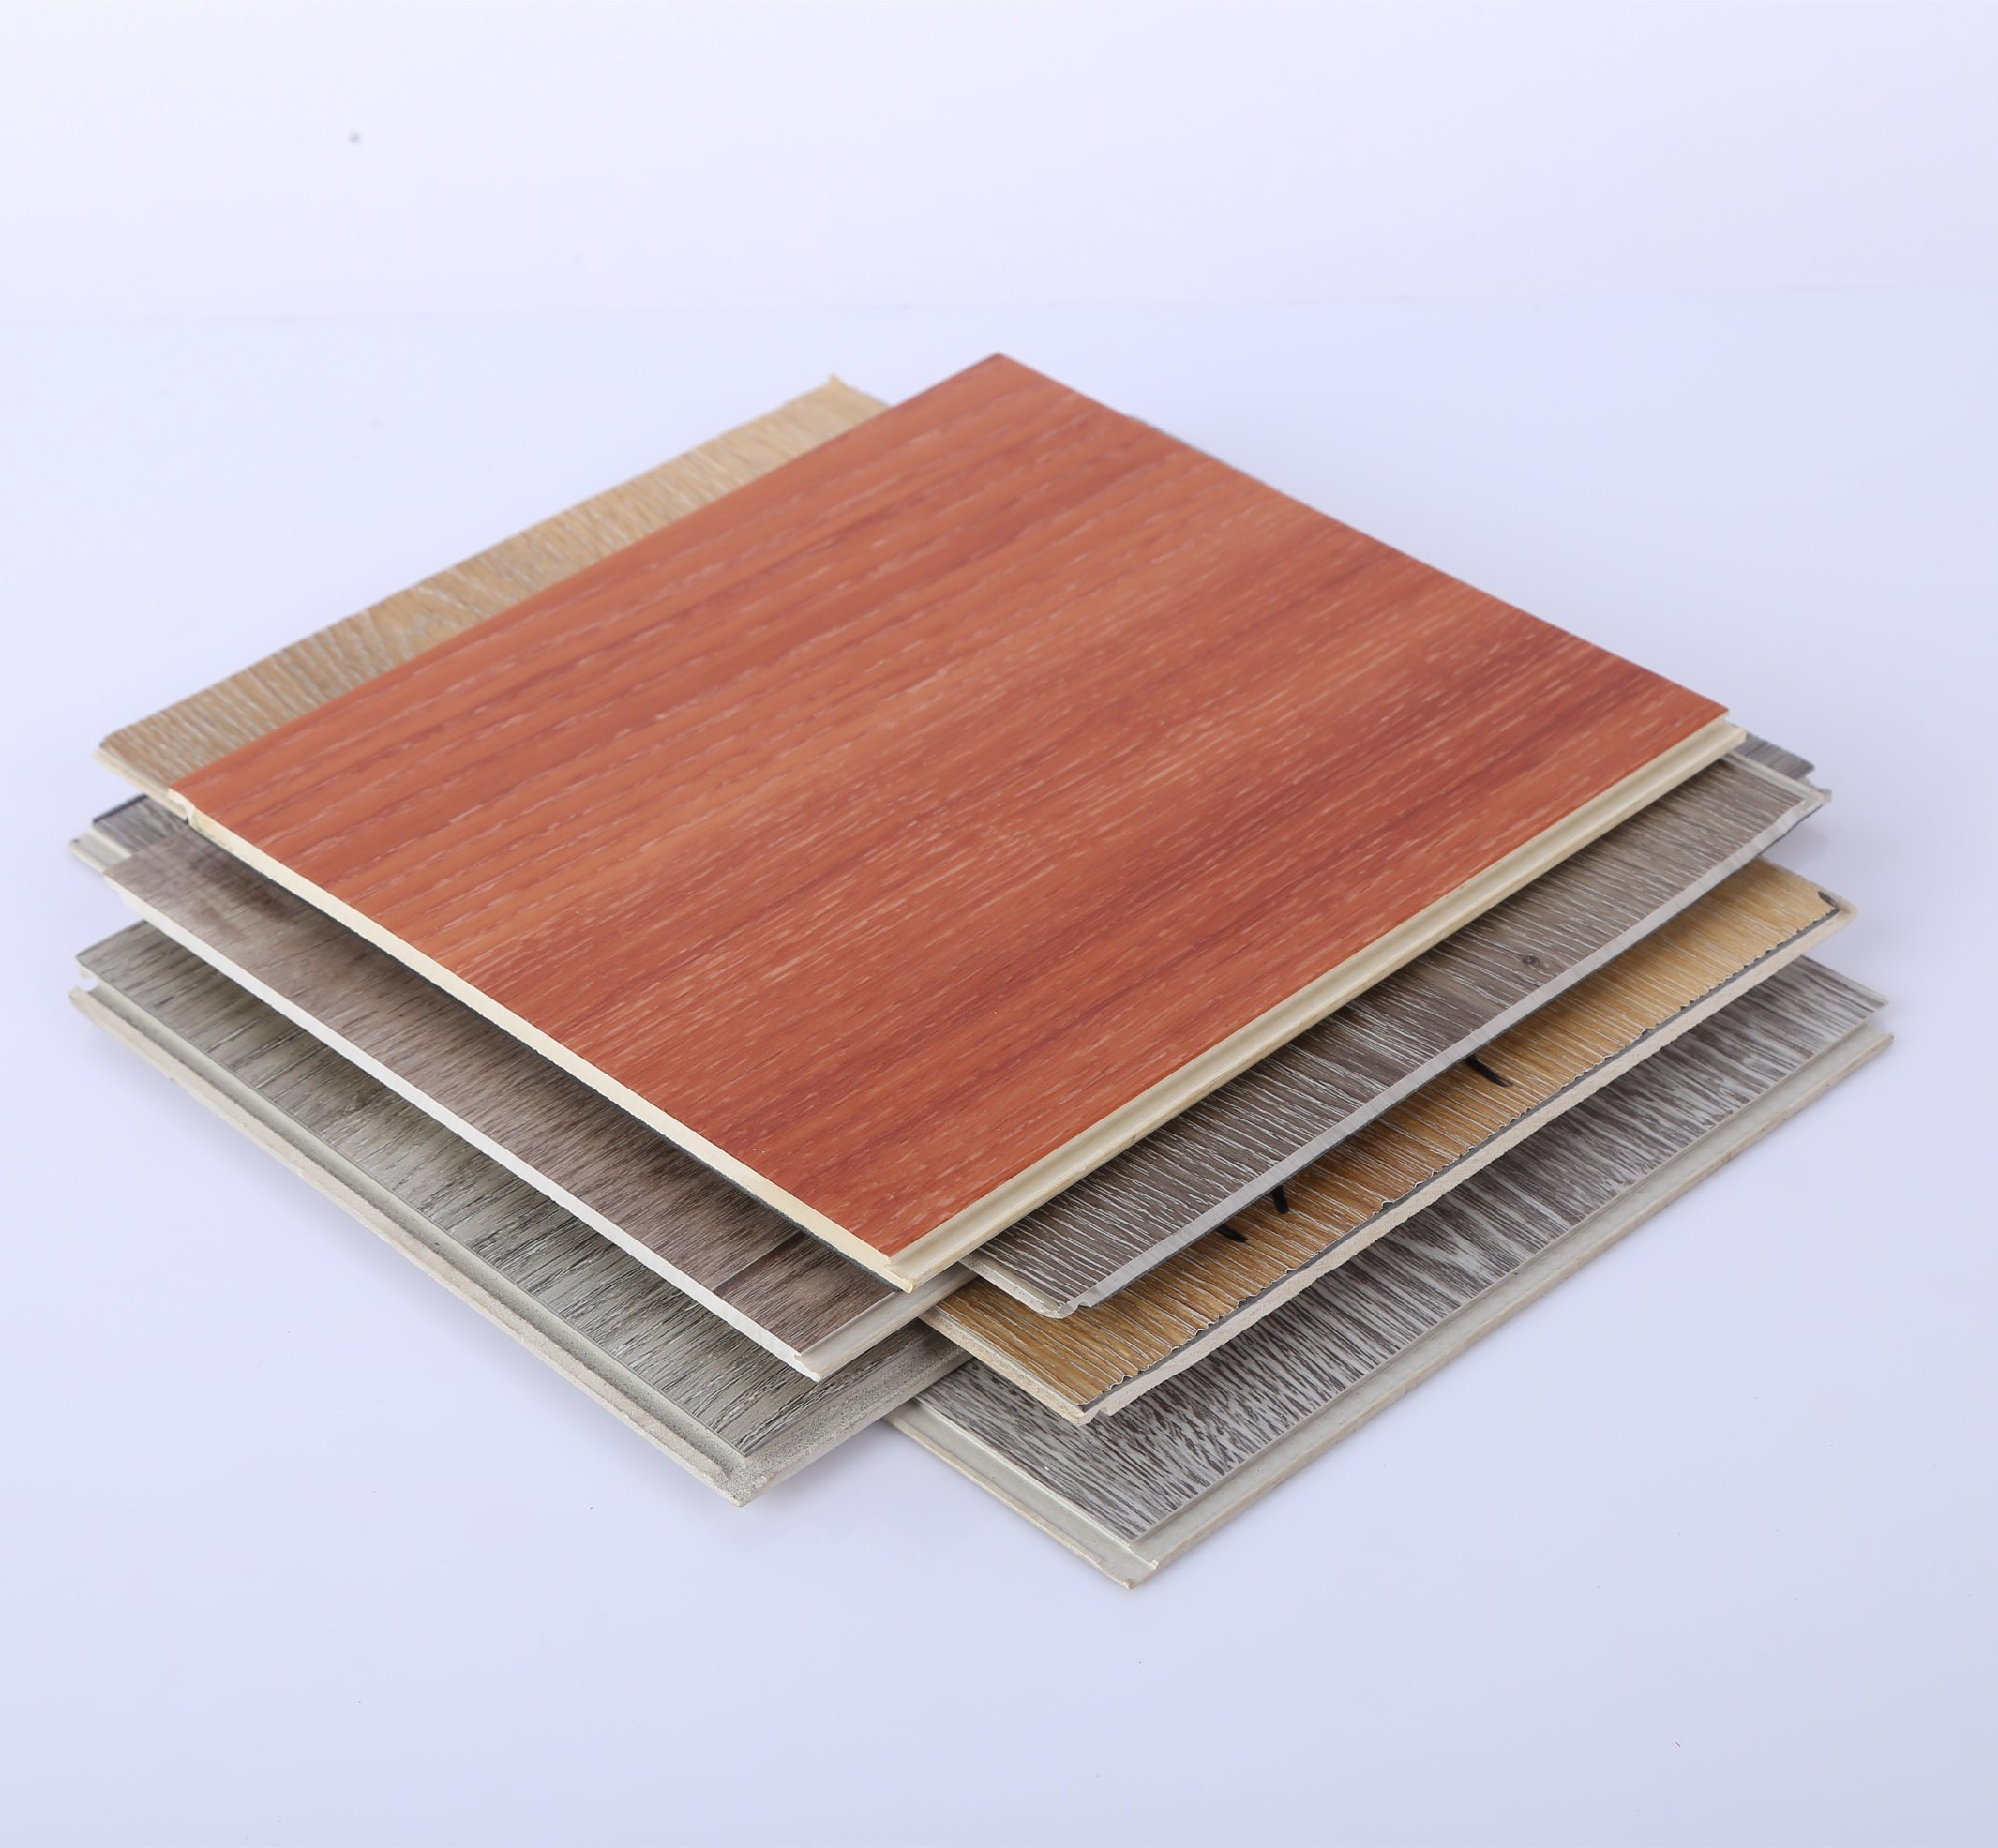 Vinyle Pvc China Pvc Hospital Floor Gym Floor Pvc Spc Vinyl Flooring Tile